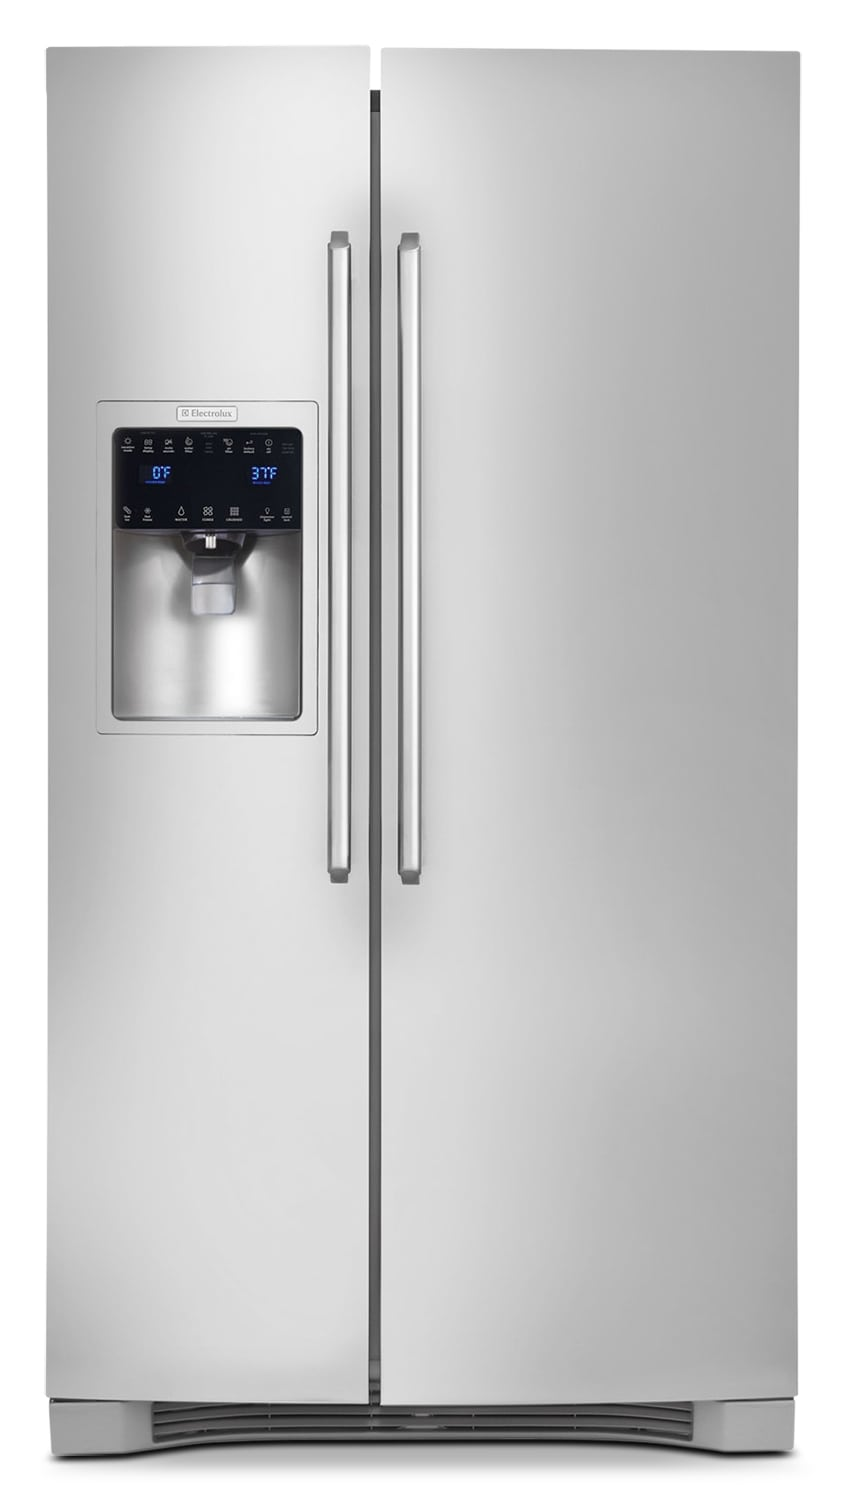 Refrigerators and Freezers - Electrolux Stainless Steel Counter-Depth Side-by-Side Refrigerator (22.67 Cu. Ft.) - EI23CS65KS